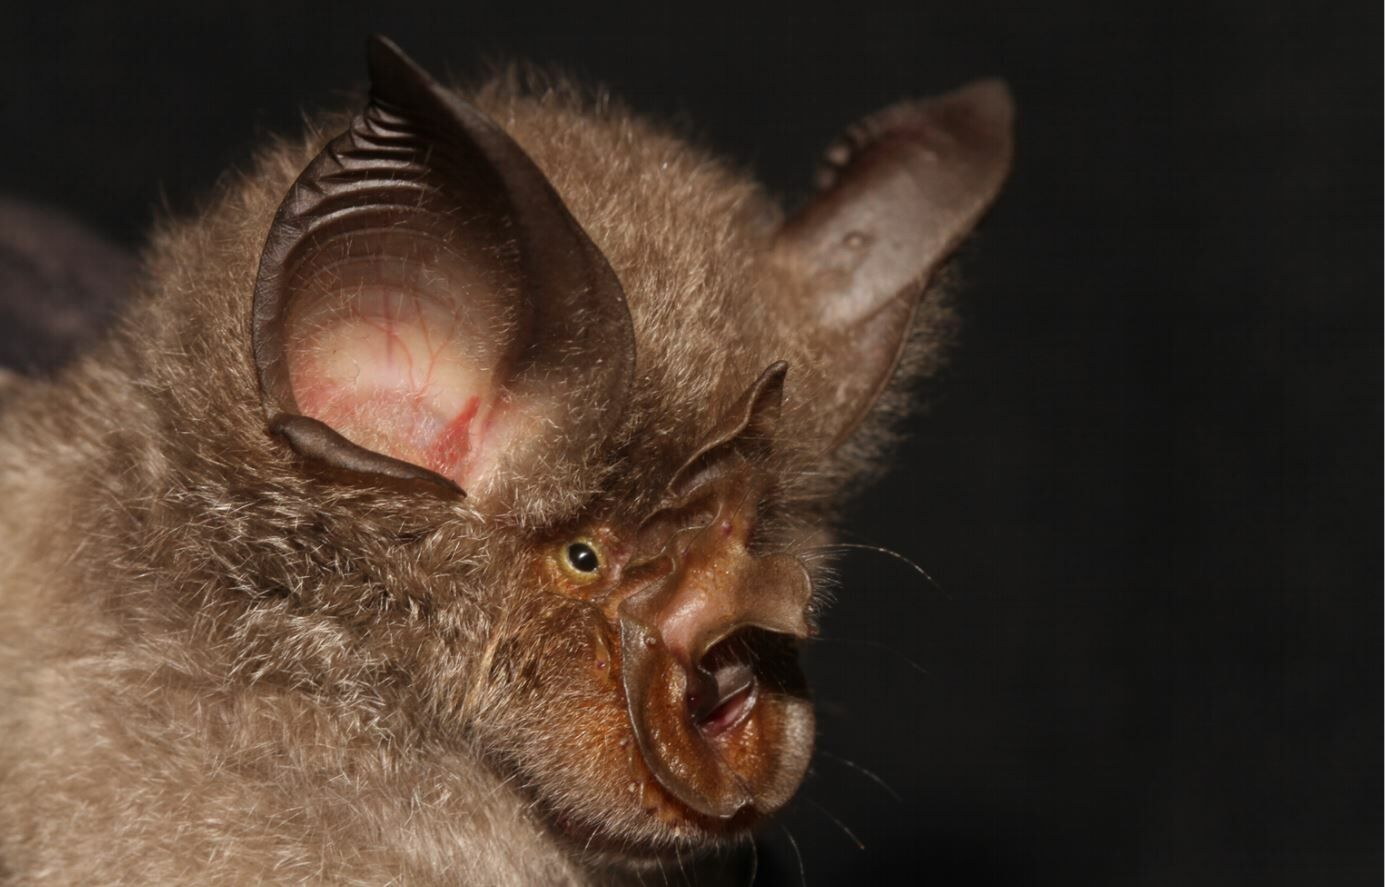 Researchers claim Thailand's bats not responsible for Covid pandemic | The Thaiger